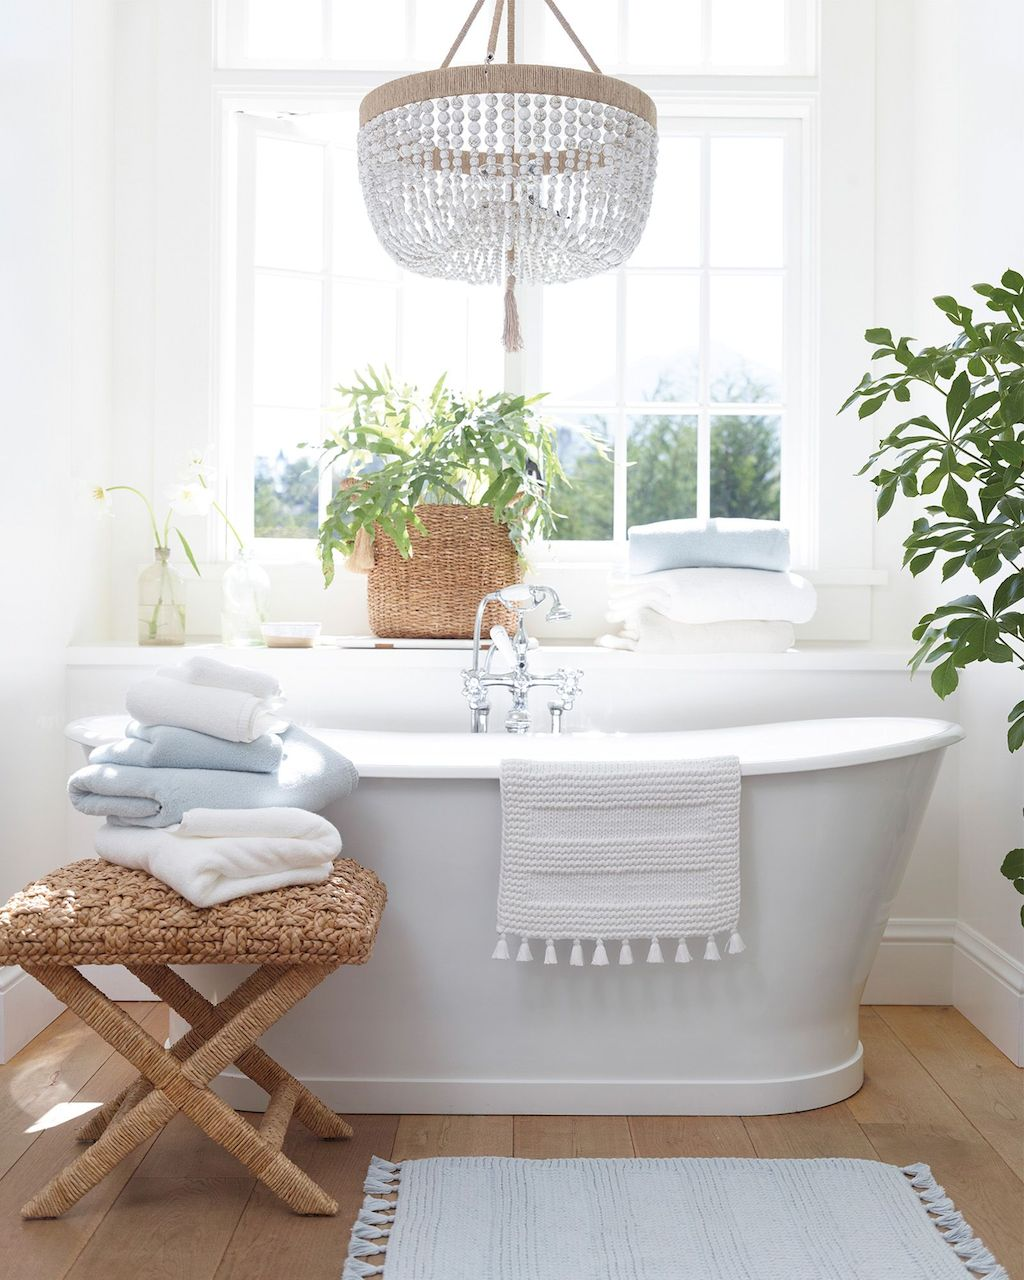 https://elonahome.com/wp-content/uploads/2019/01/Small-standing-tubs-powerful-to-make-up-small-bathroom-looks-Part-15.jpg